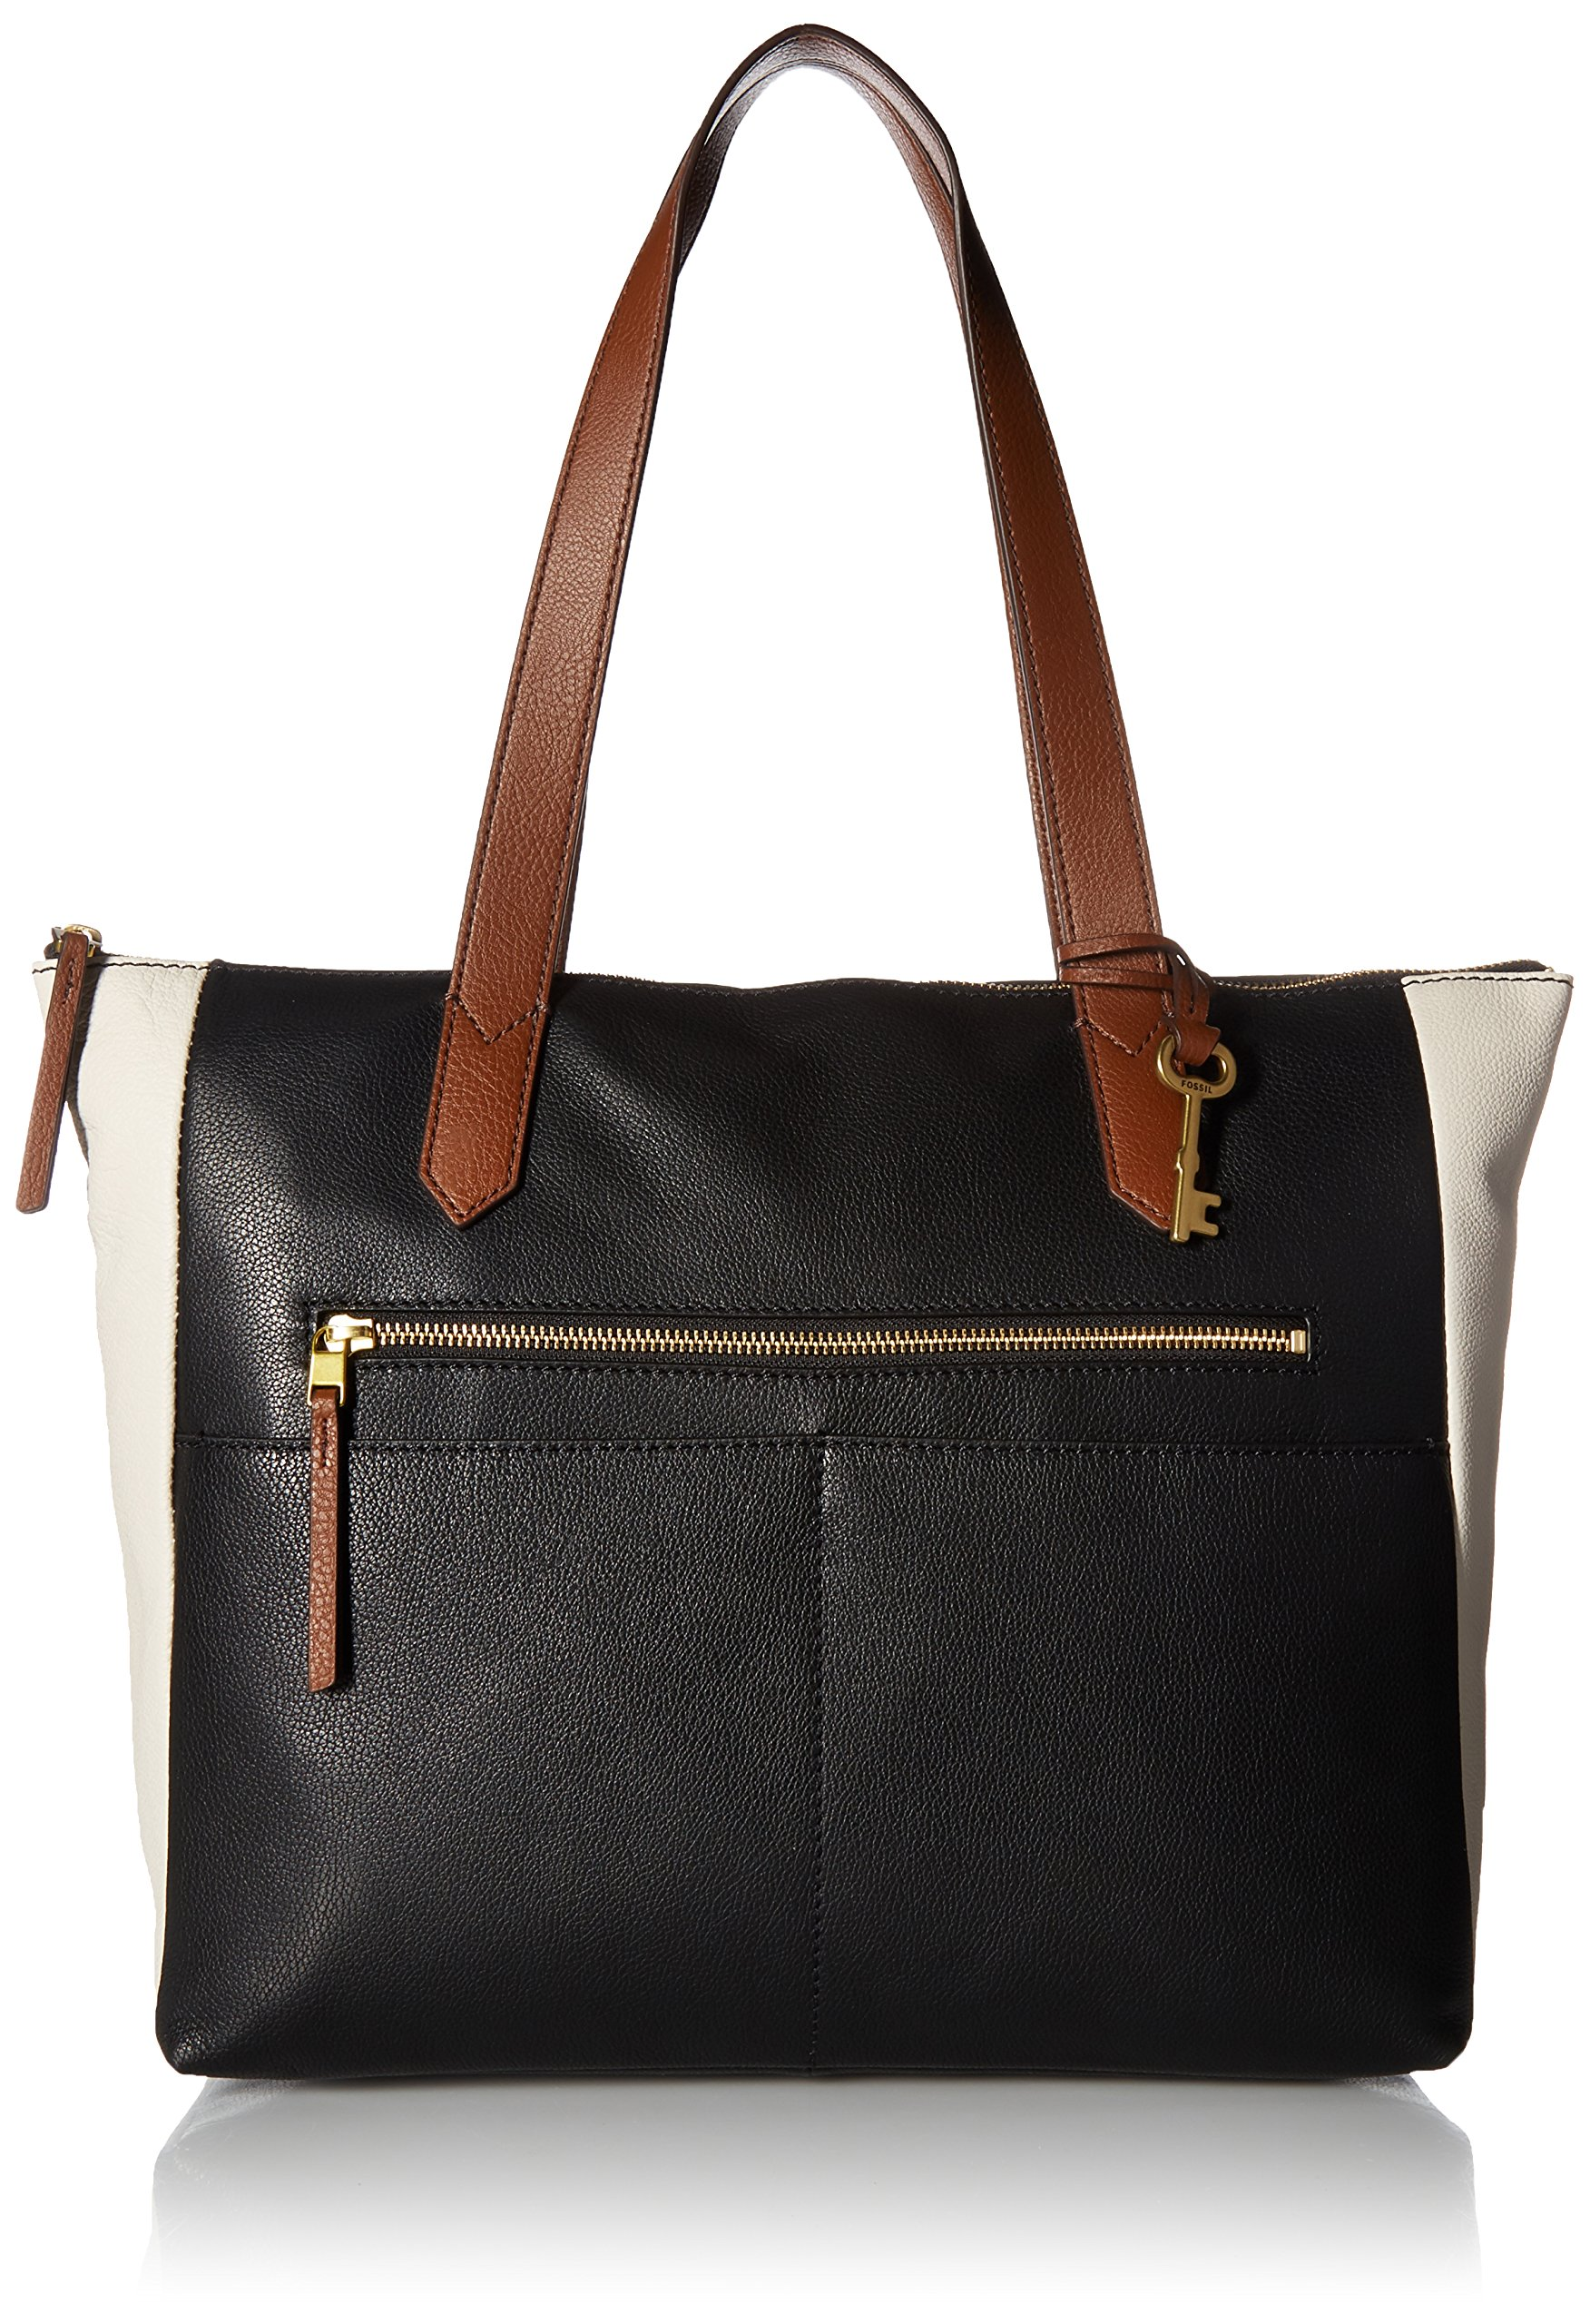 Fossil Fiona E/W Tote Bag, Black/White by Fossil (Image #1)